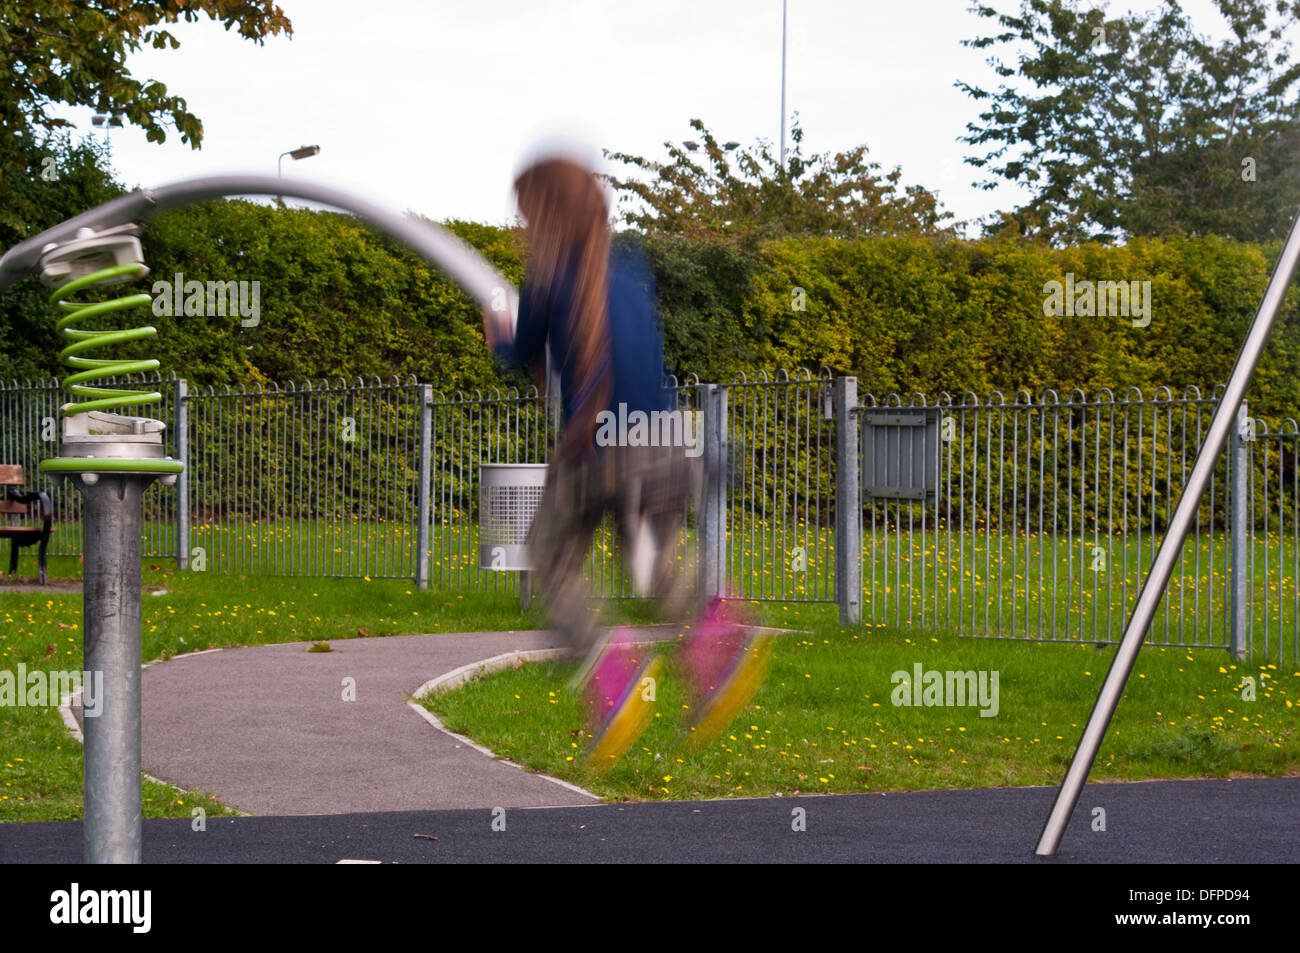 Little Girl bouncing on a Seesaw at a childrens playground with subject movement blur - Stock Image